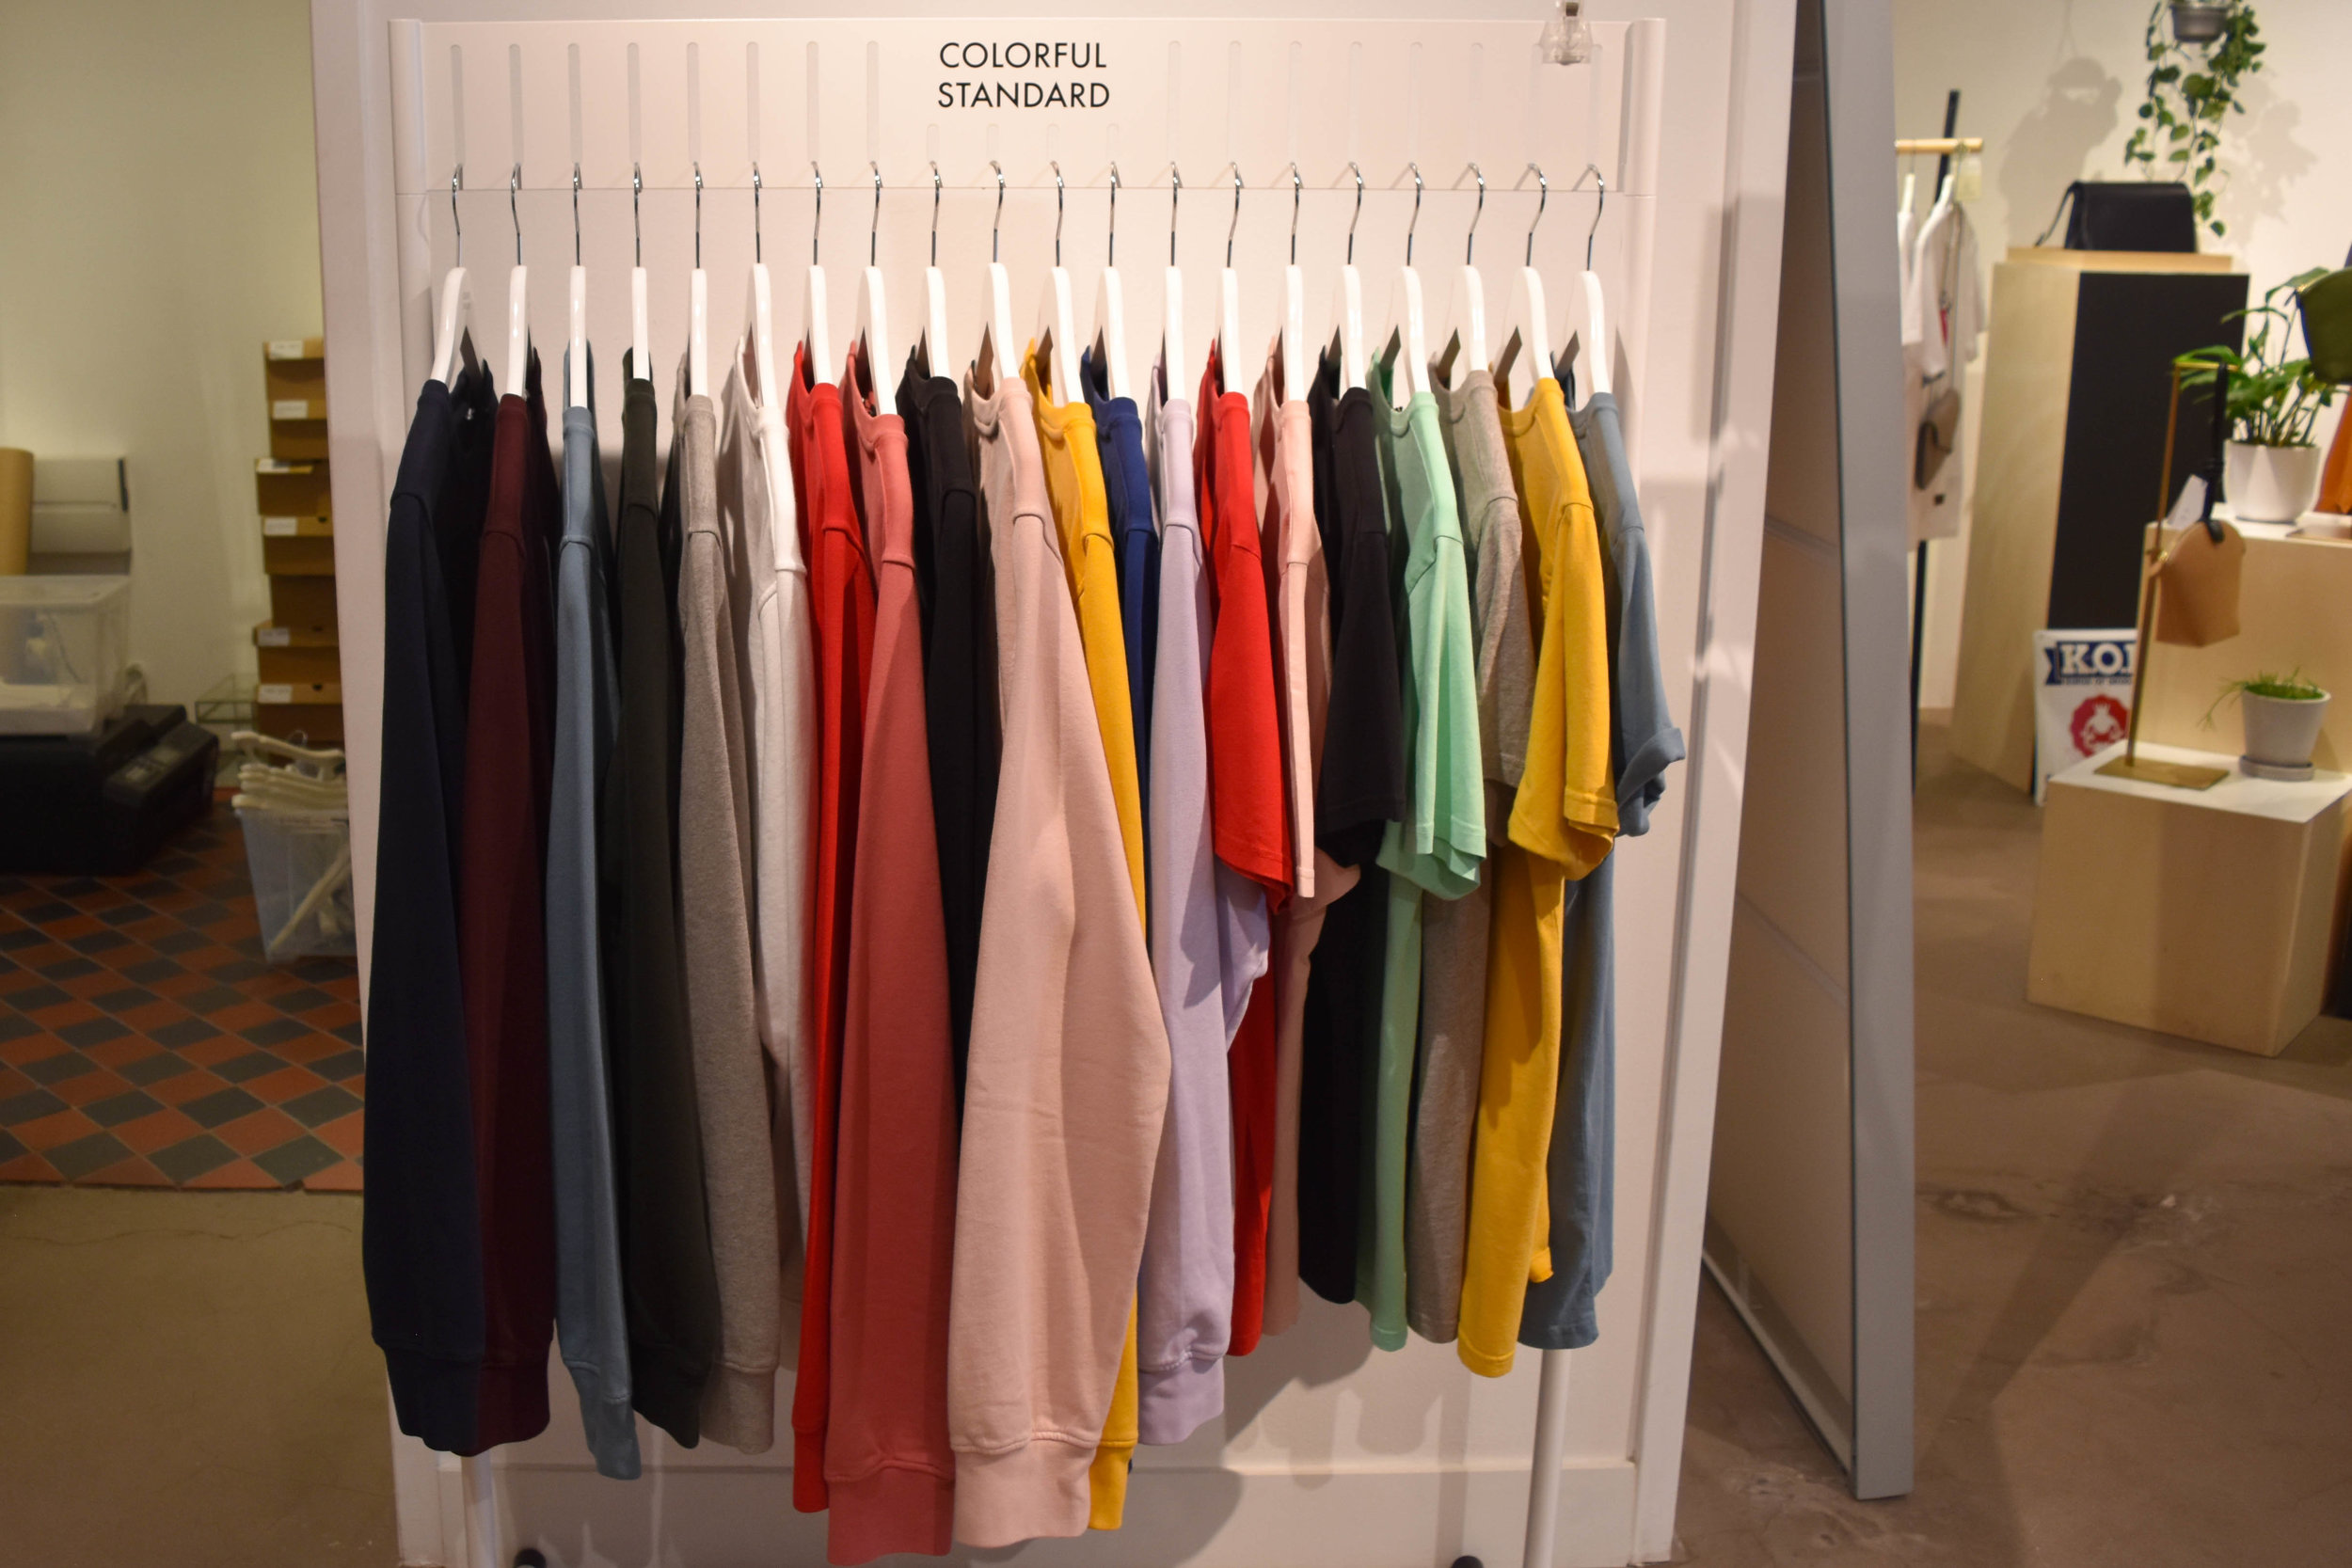 A rack of  Colorful Standard : colorful (hehe) organic, logo free t-shirts and sweats.